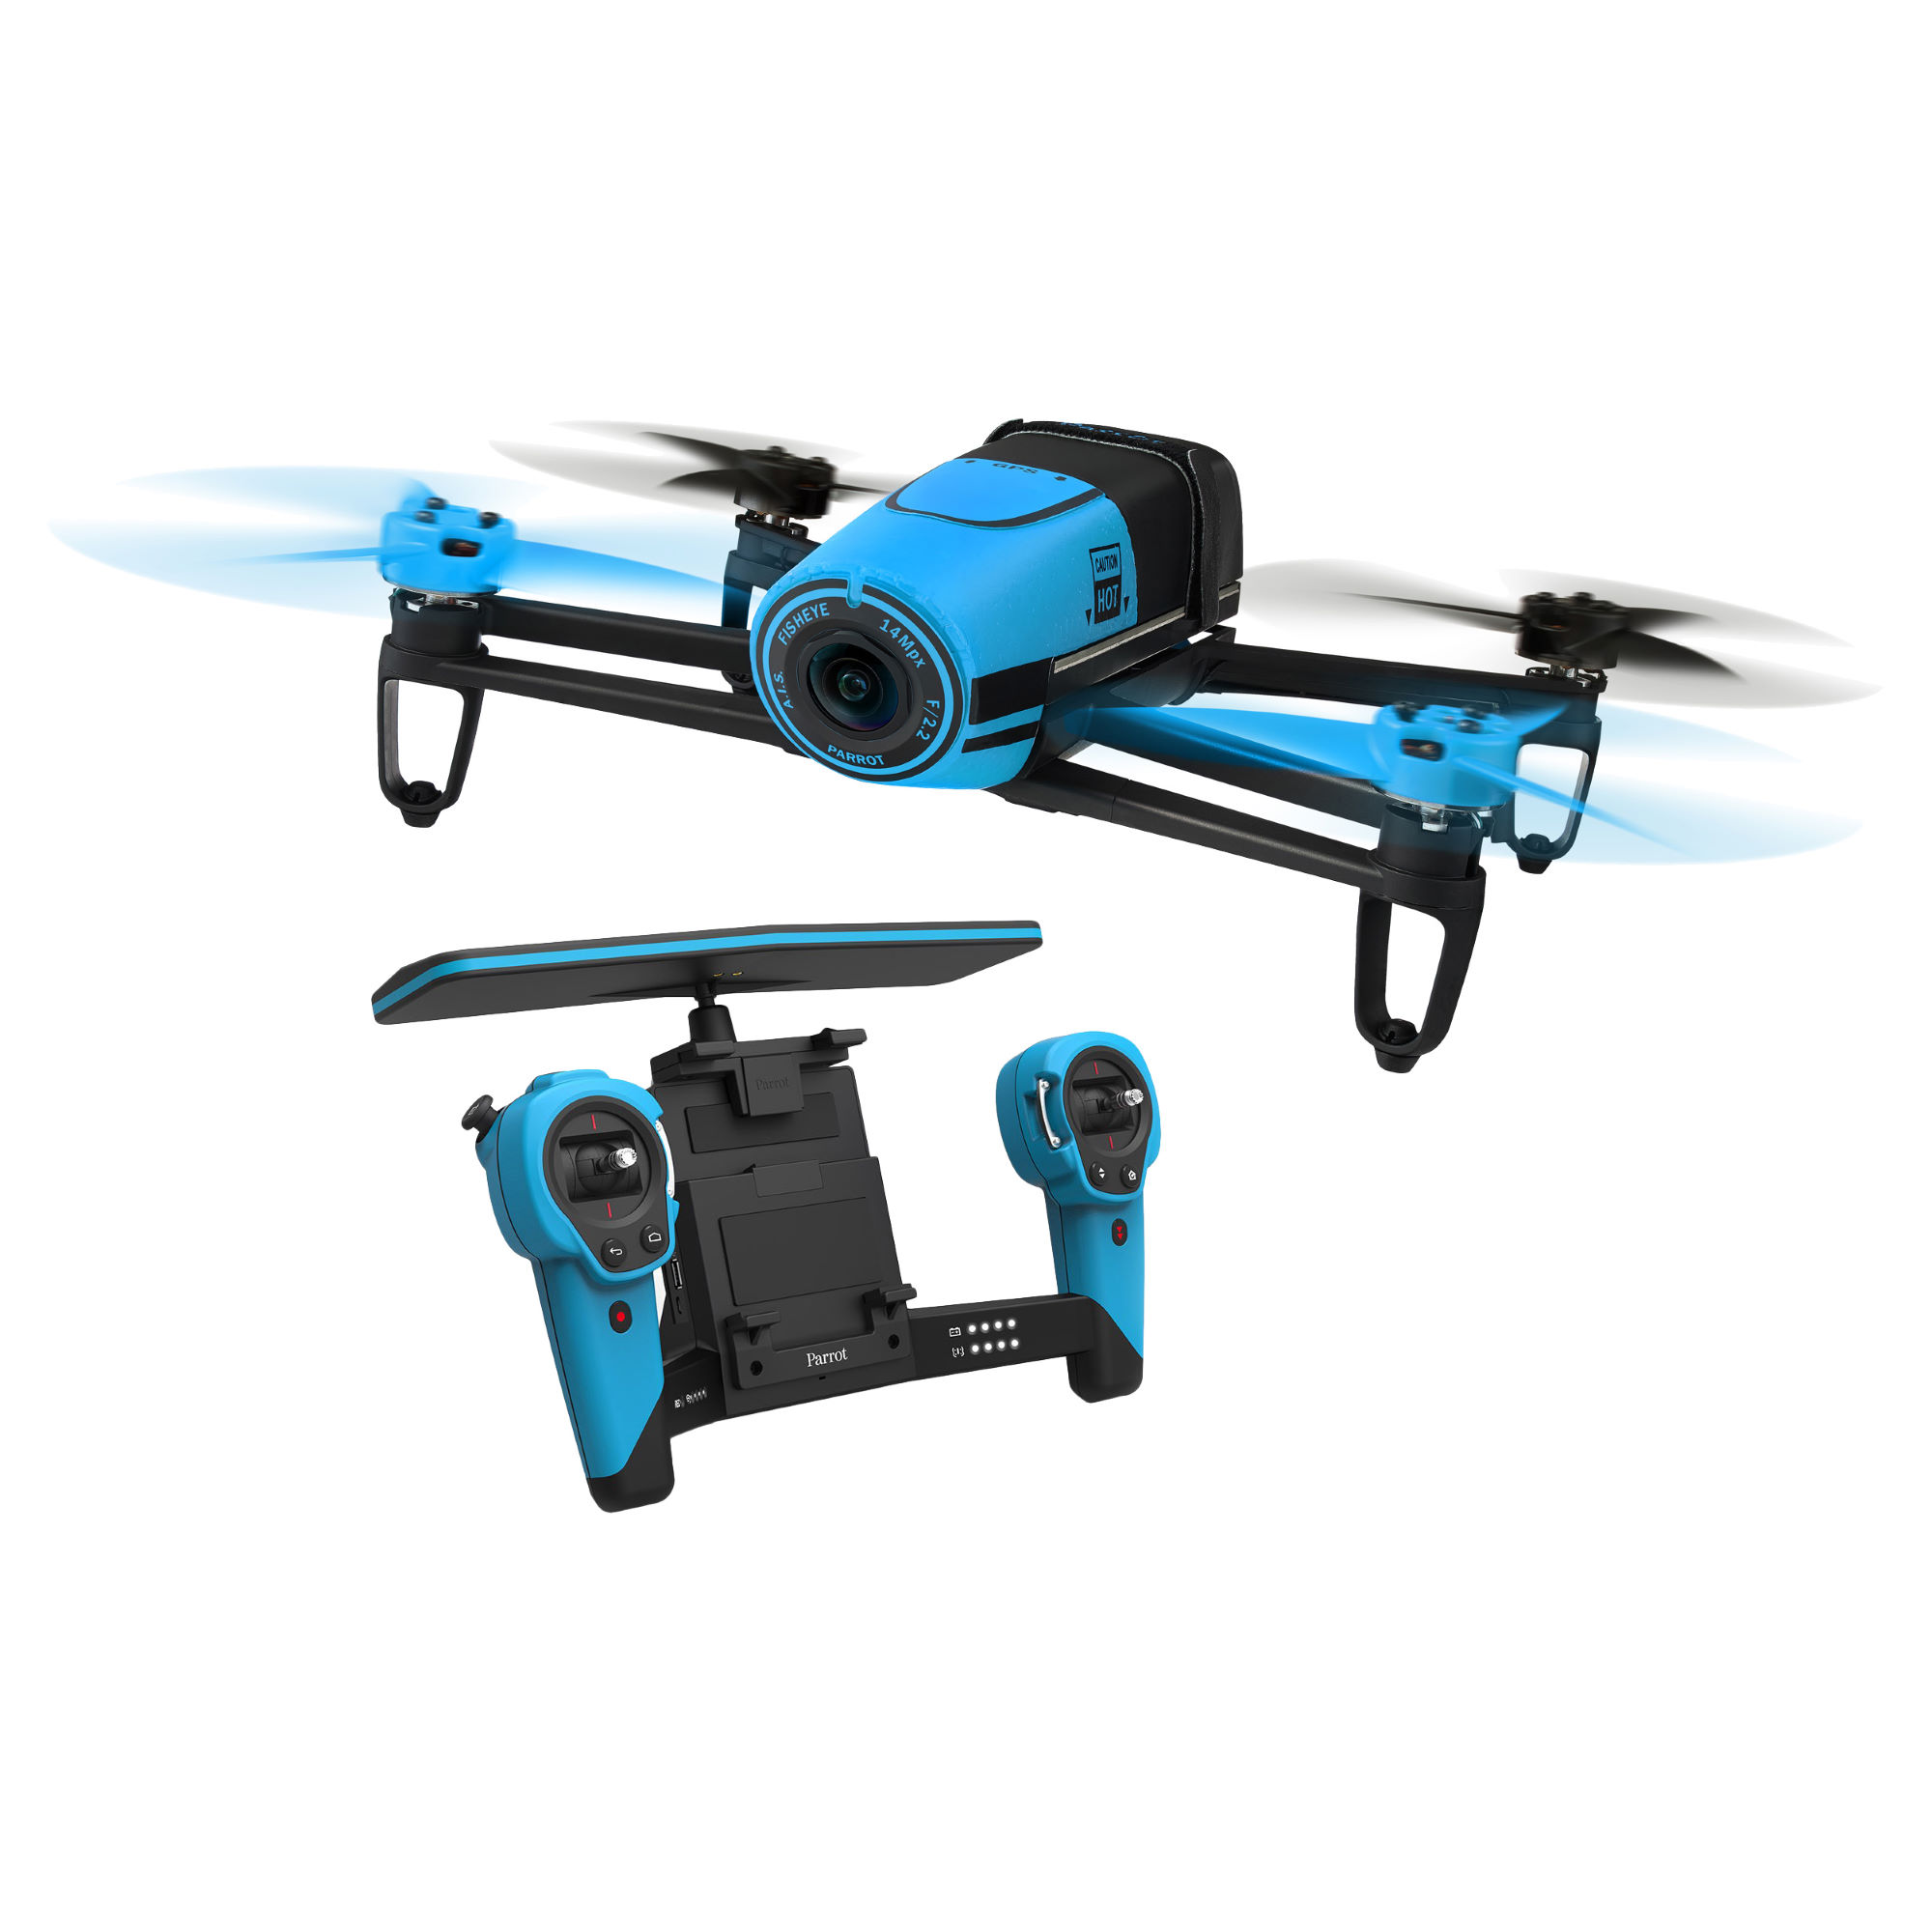 parrot drone 2 0 range with Parrot Bebop Drone With Skycontroller on Parrot Bebop 2 Drone Red 10143320 Pdt also Parrot pf726003 bebop drone 2 with besides Parrot Ardrone 20 Gps Edition together with 95489 in addition .